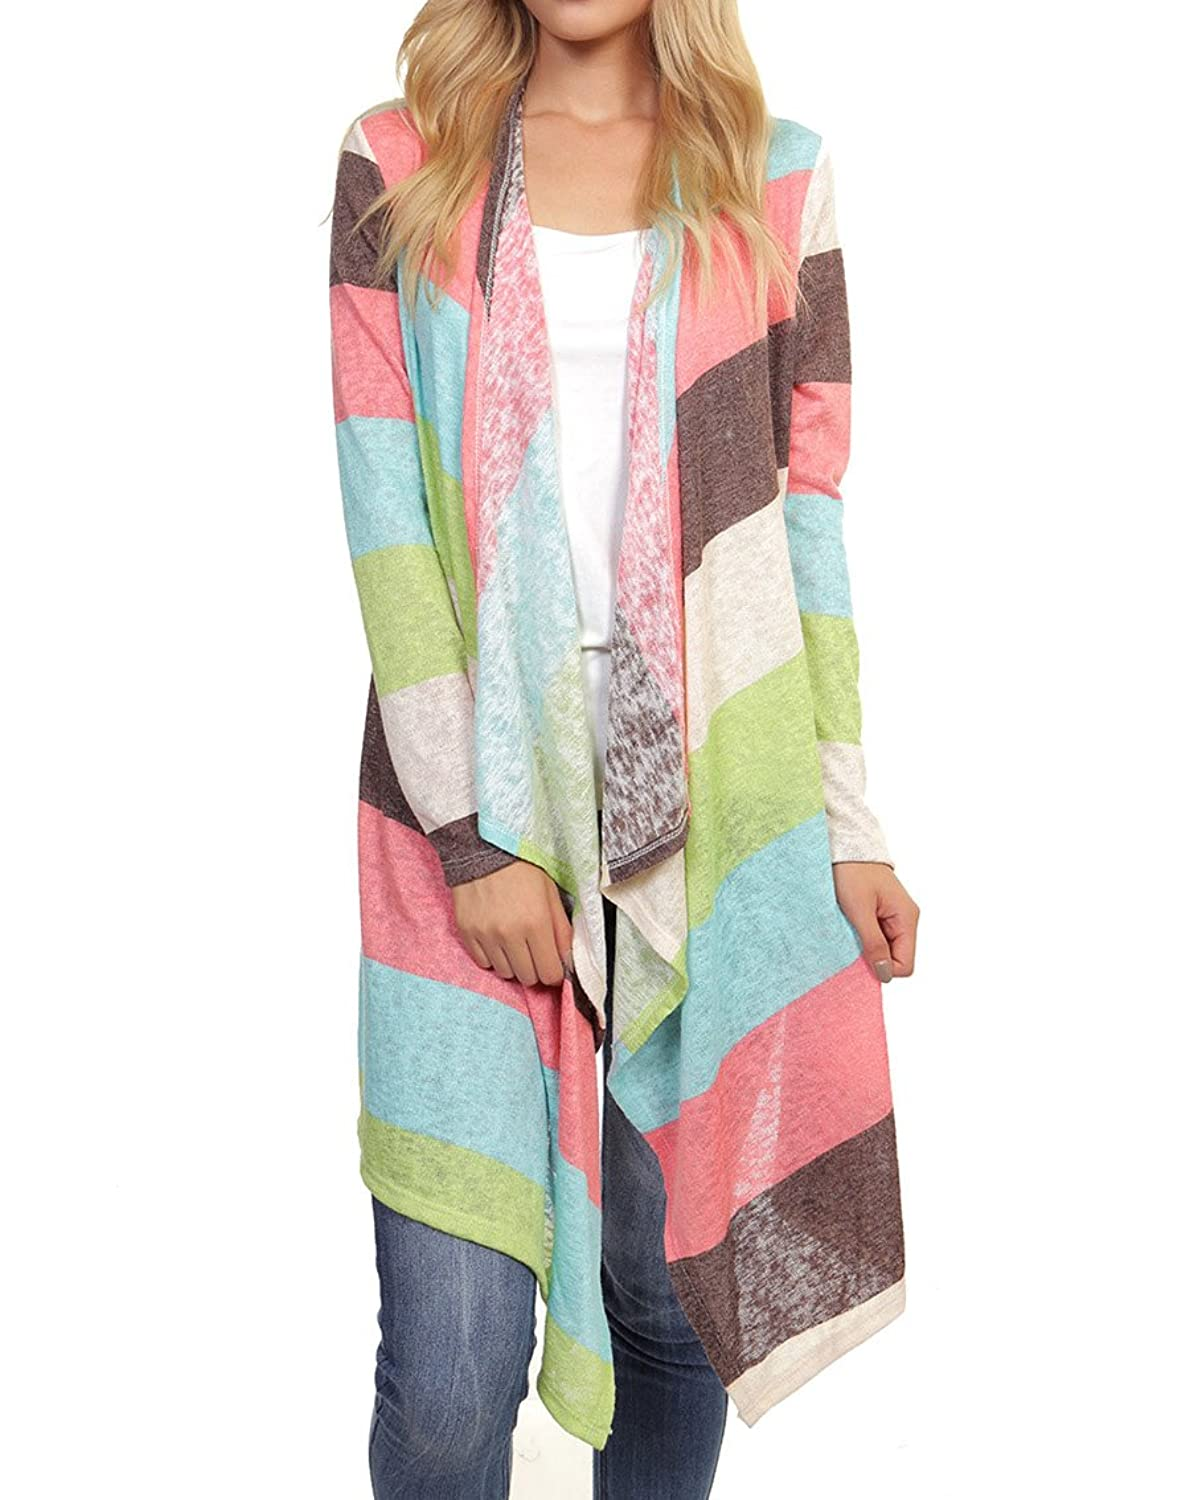 Sassy Apparel Women's Long Sleeve Multi Color Fashion Cardigan Sweater